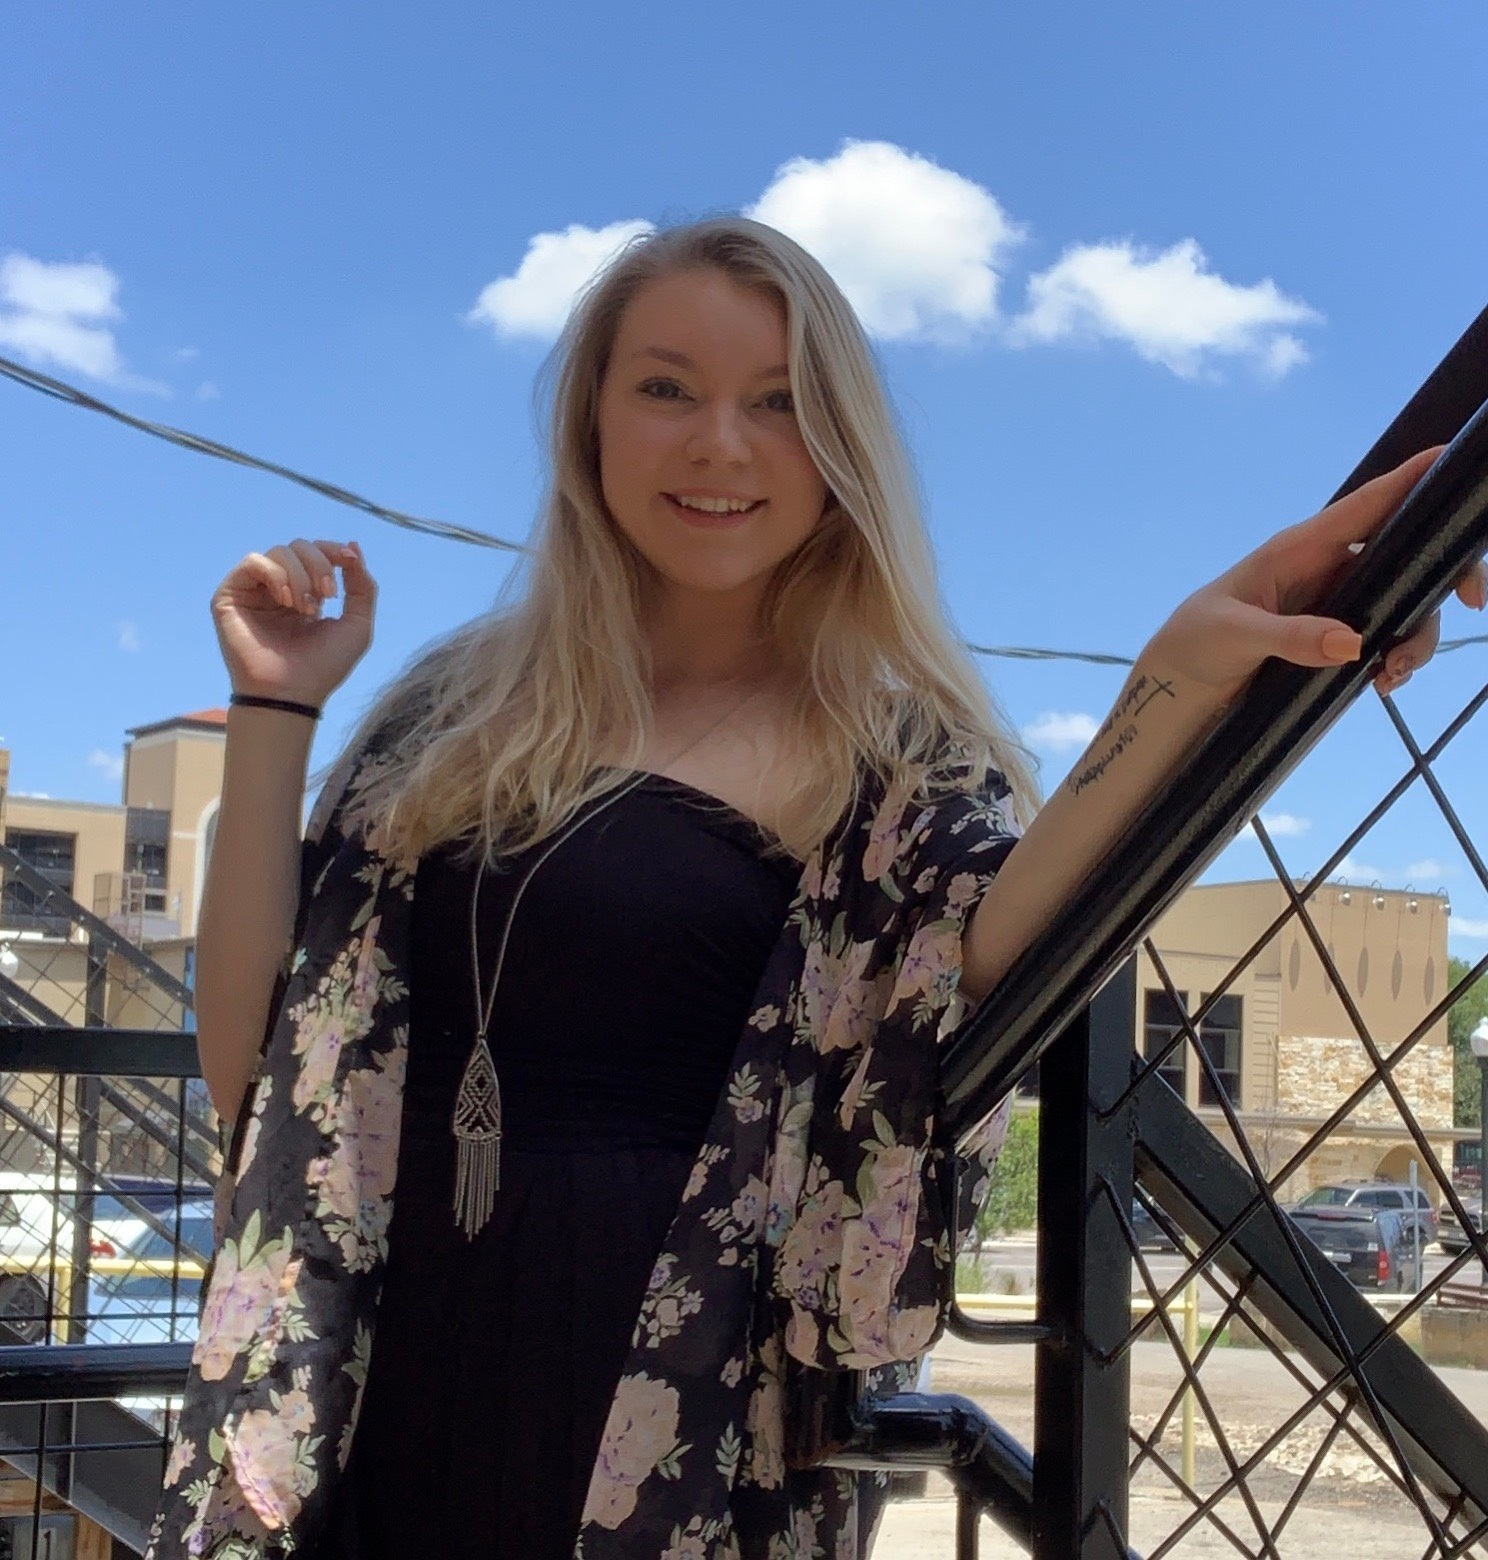 Michaela Self - Started Fall 2018College Major: Public Relations